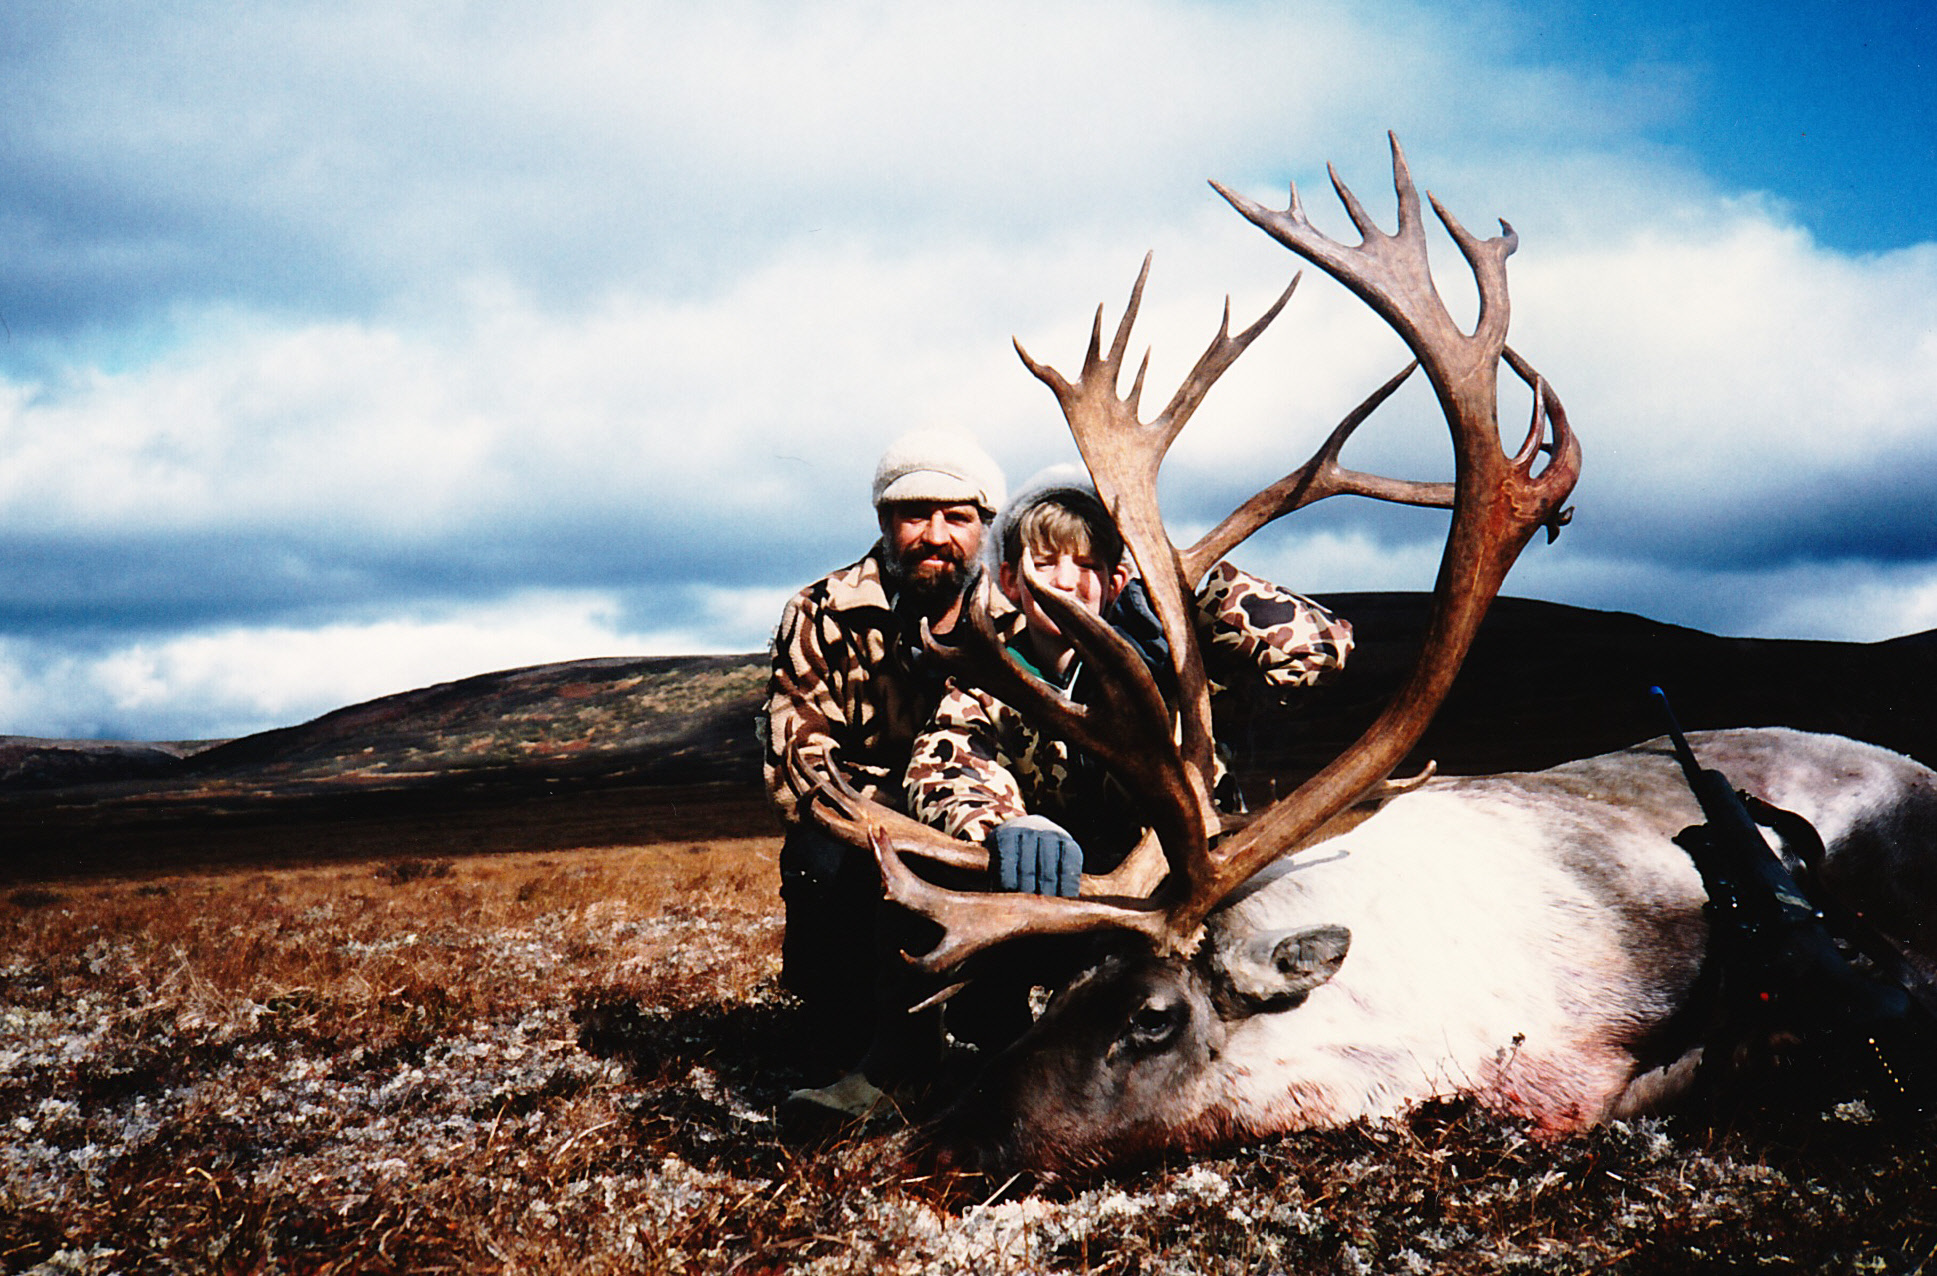 Frank Orton, age 12 from MN with his 399 1/8 B&C caribou.